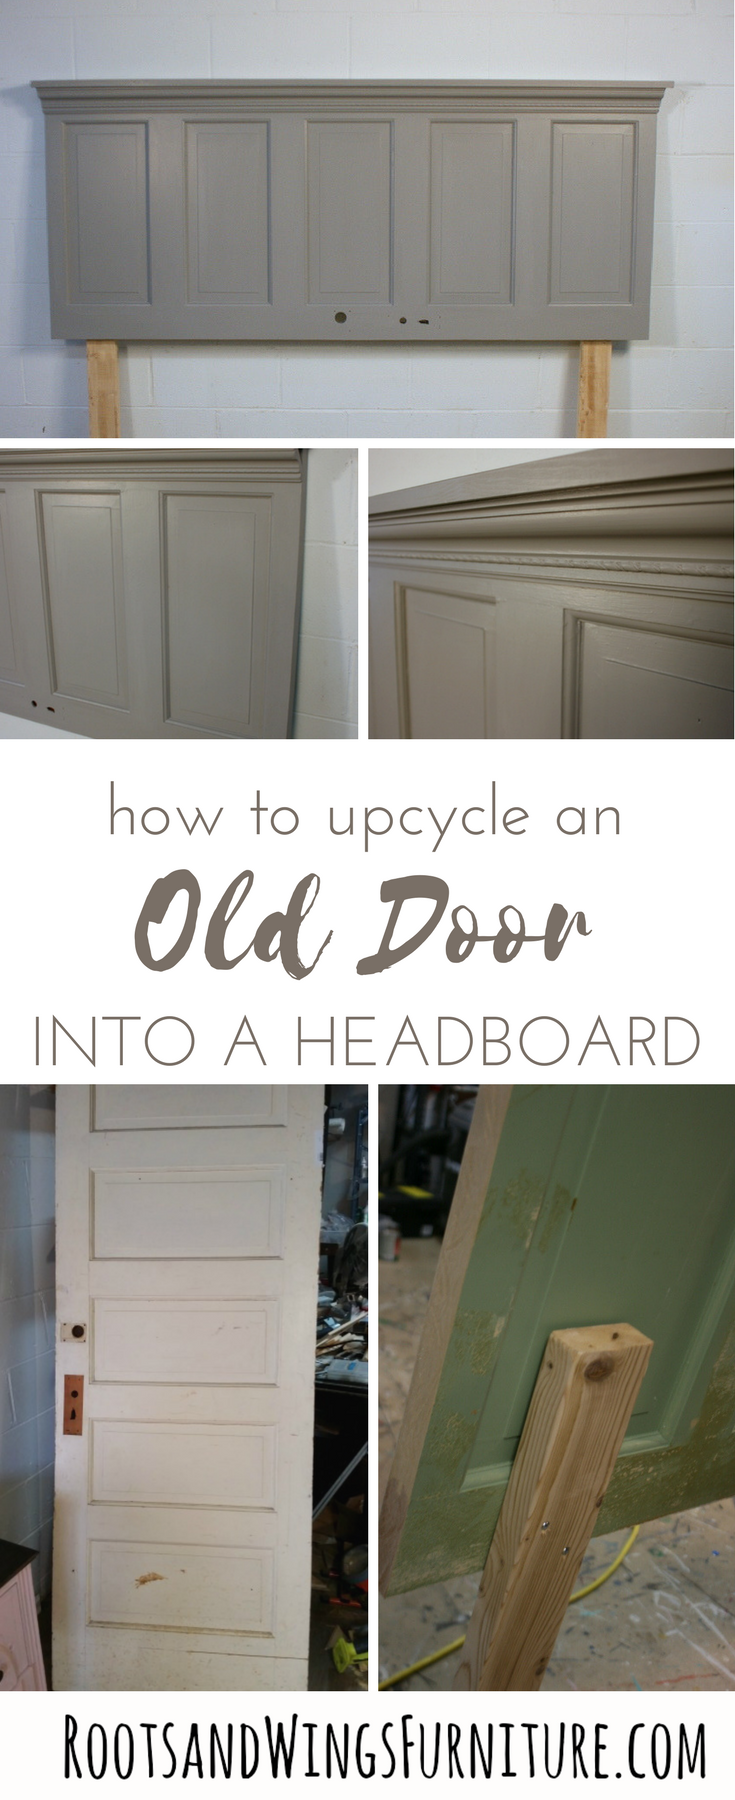 Upcycled Old Door Headboard Roots and Wings Furniture.png